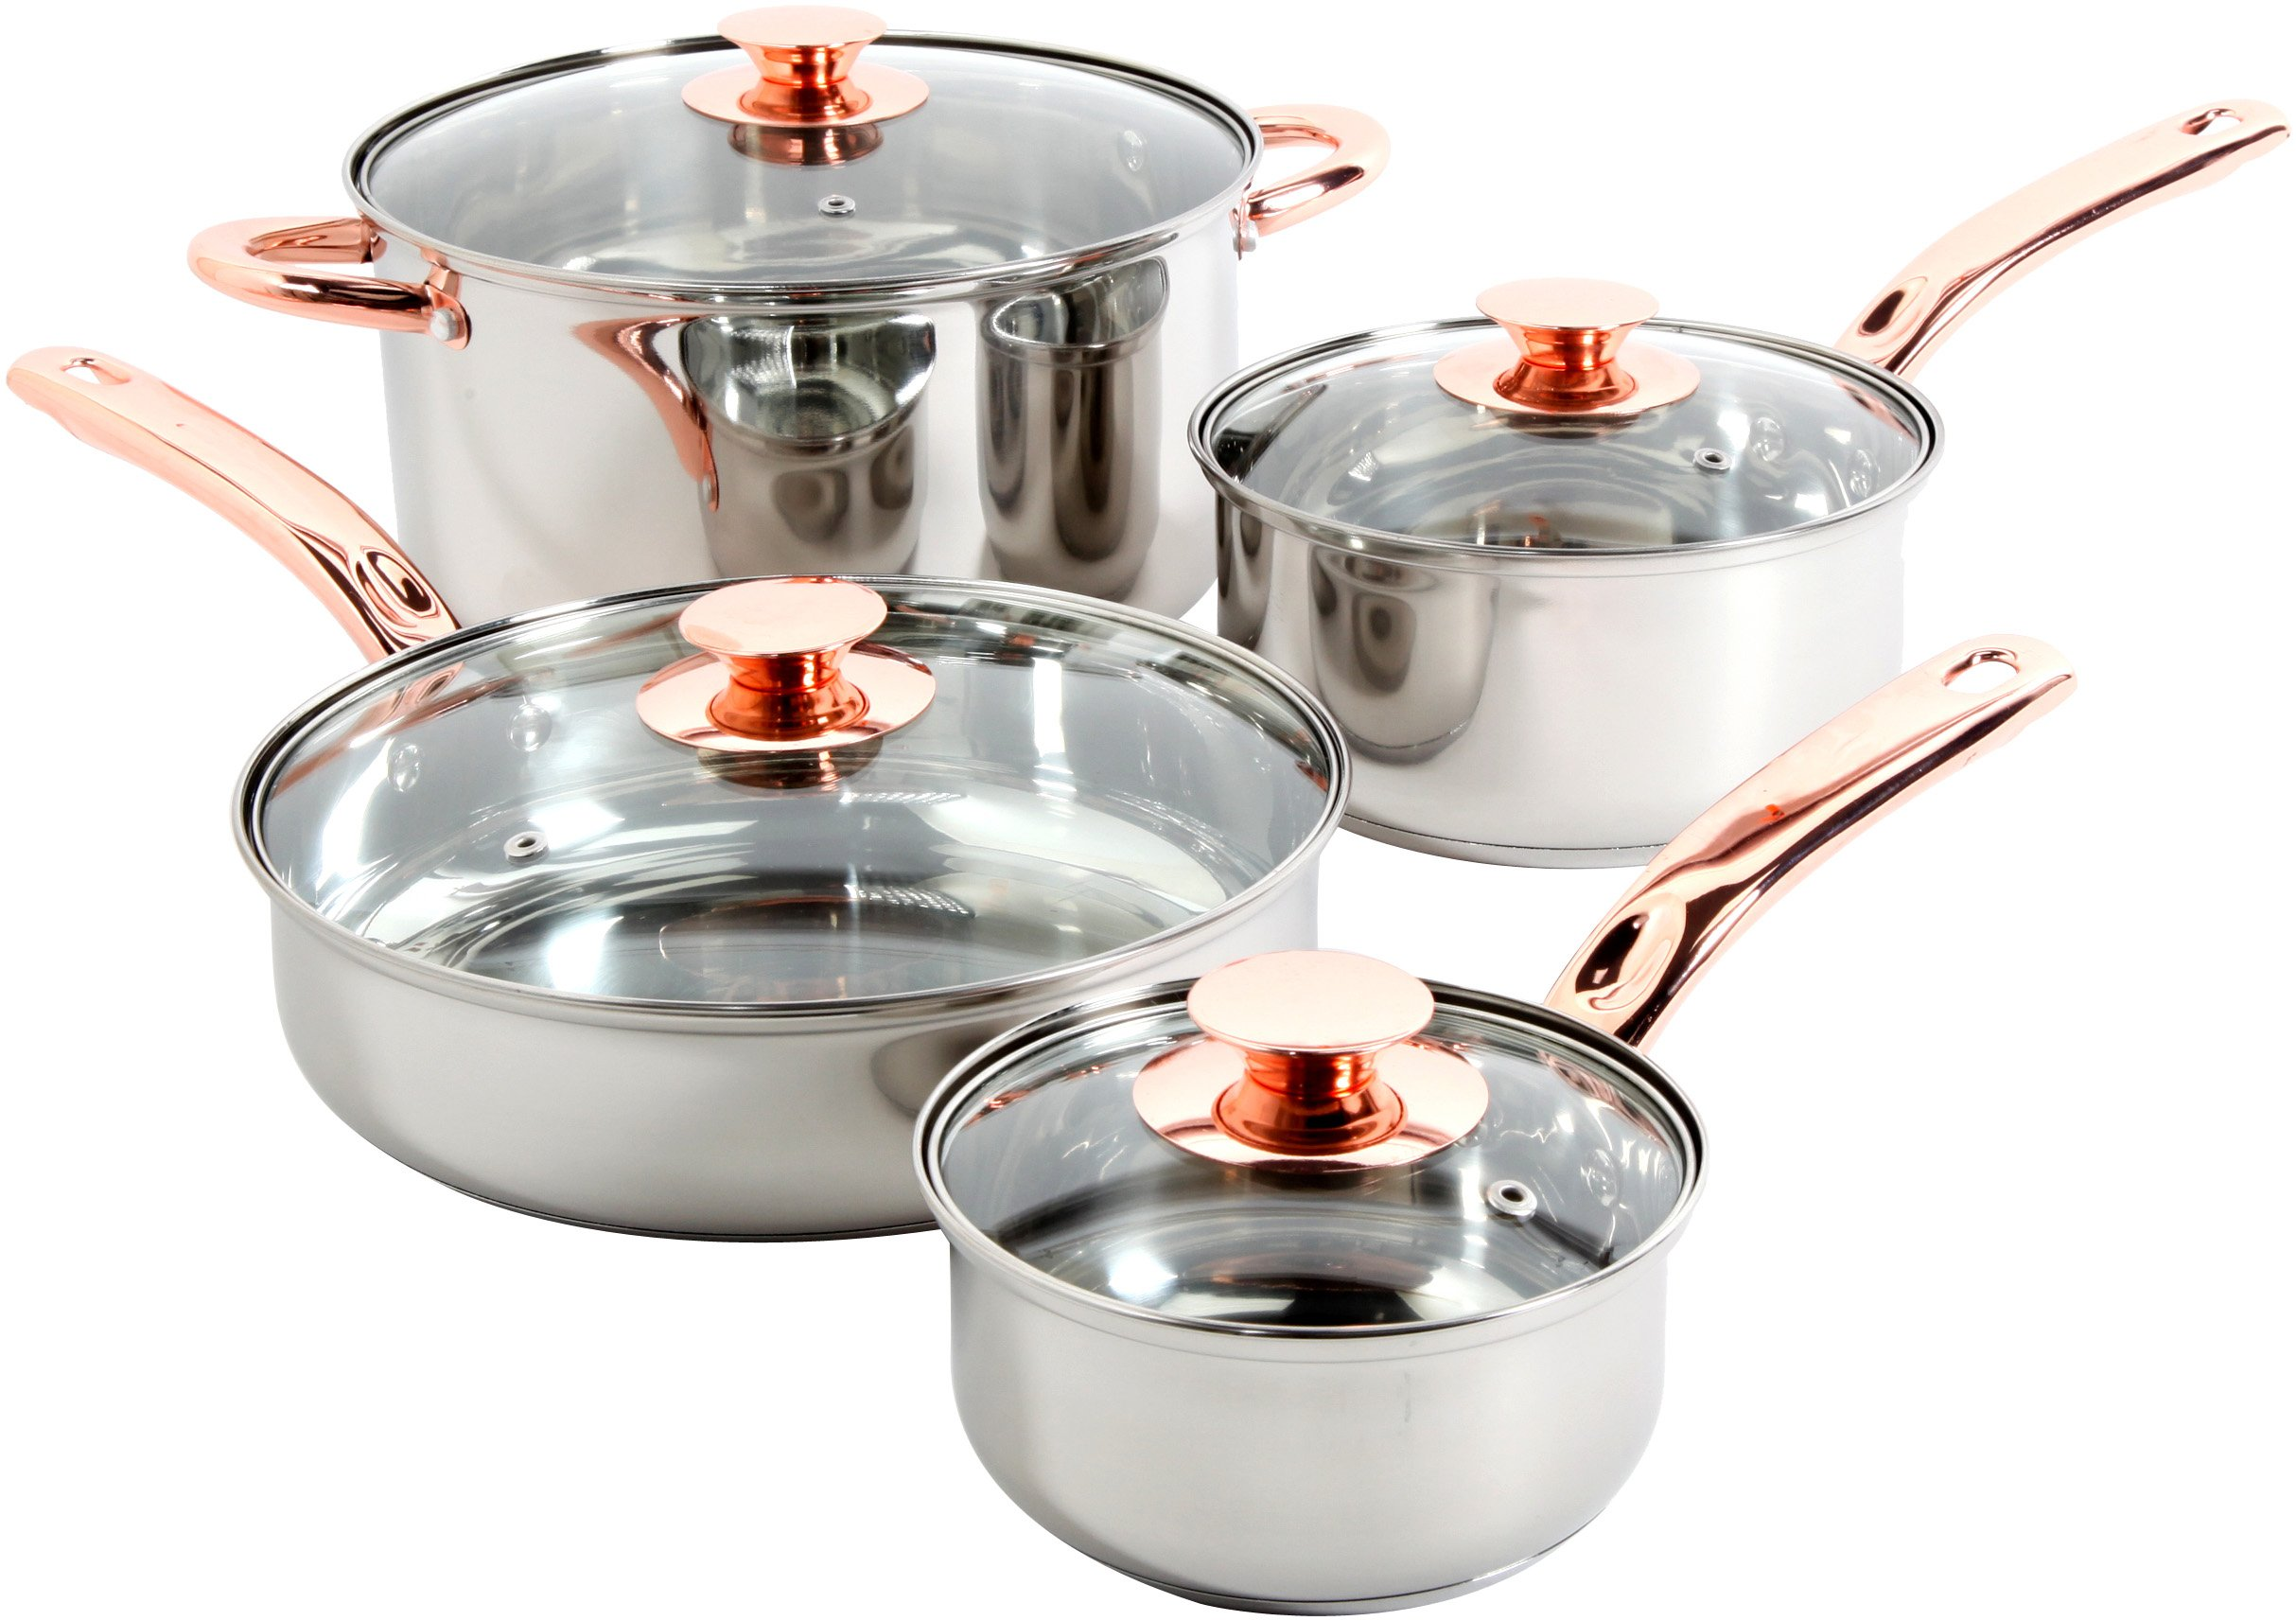 Sunbeam 91345.08 Ansonville 8-Piece Cookware Set, Silver/Copper by Sunbeam